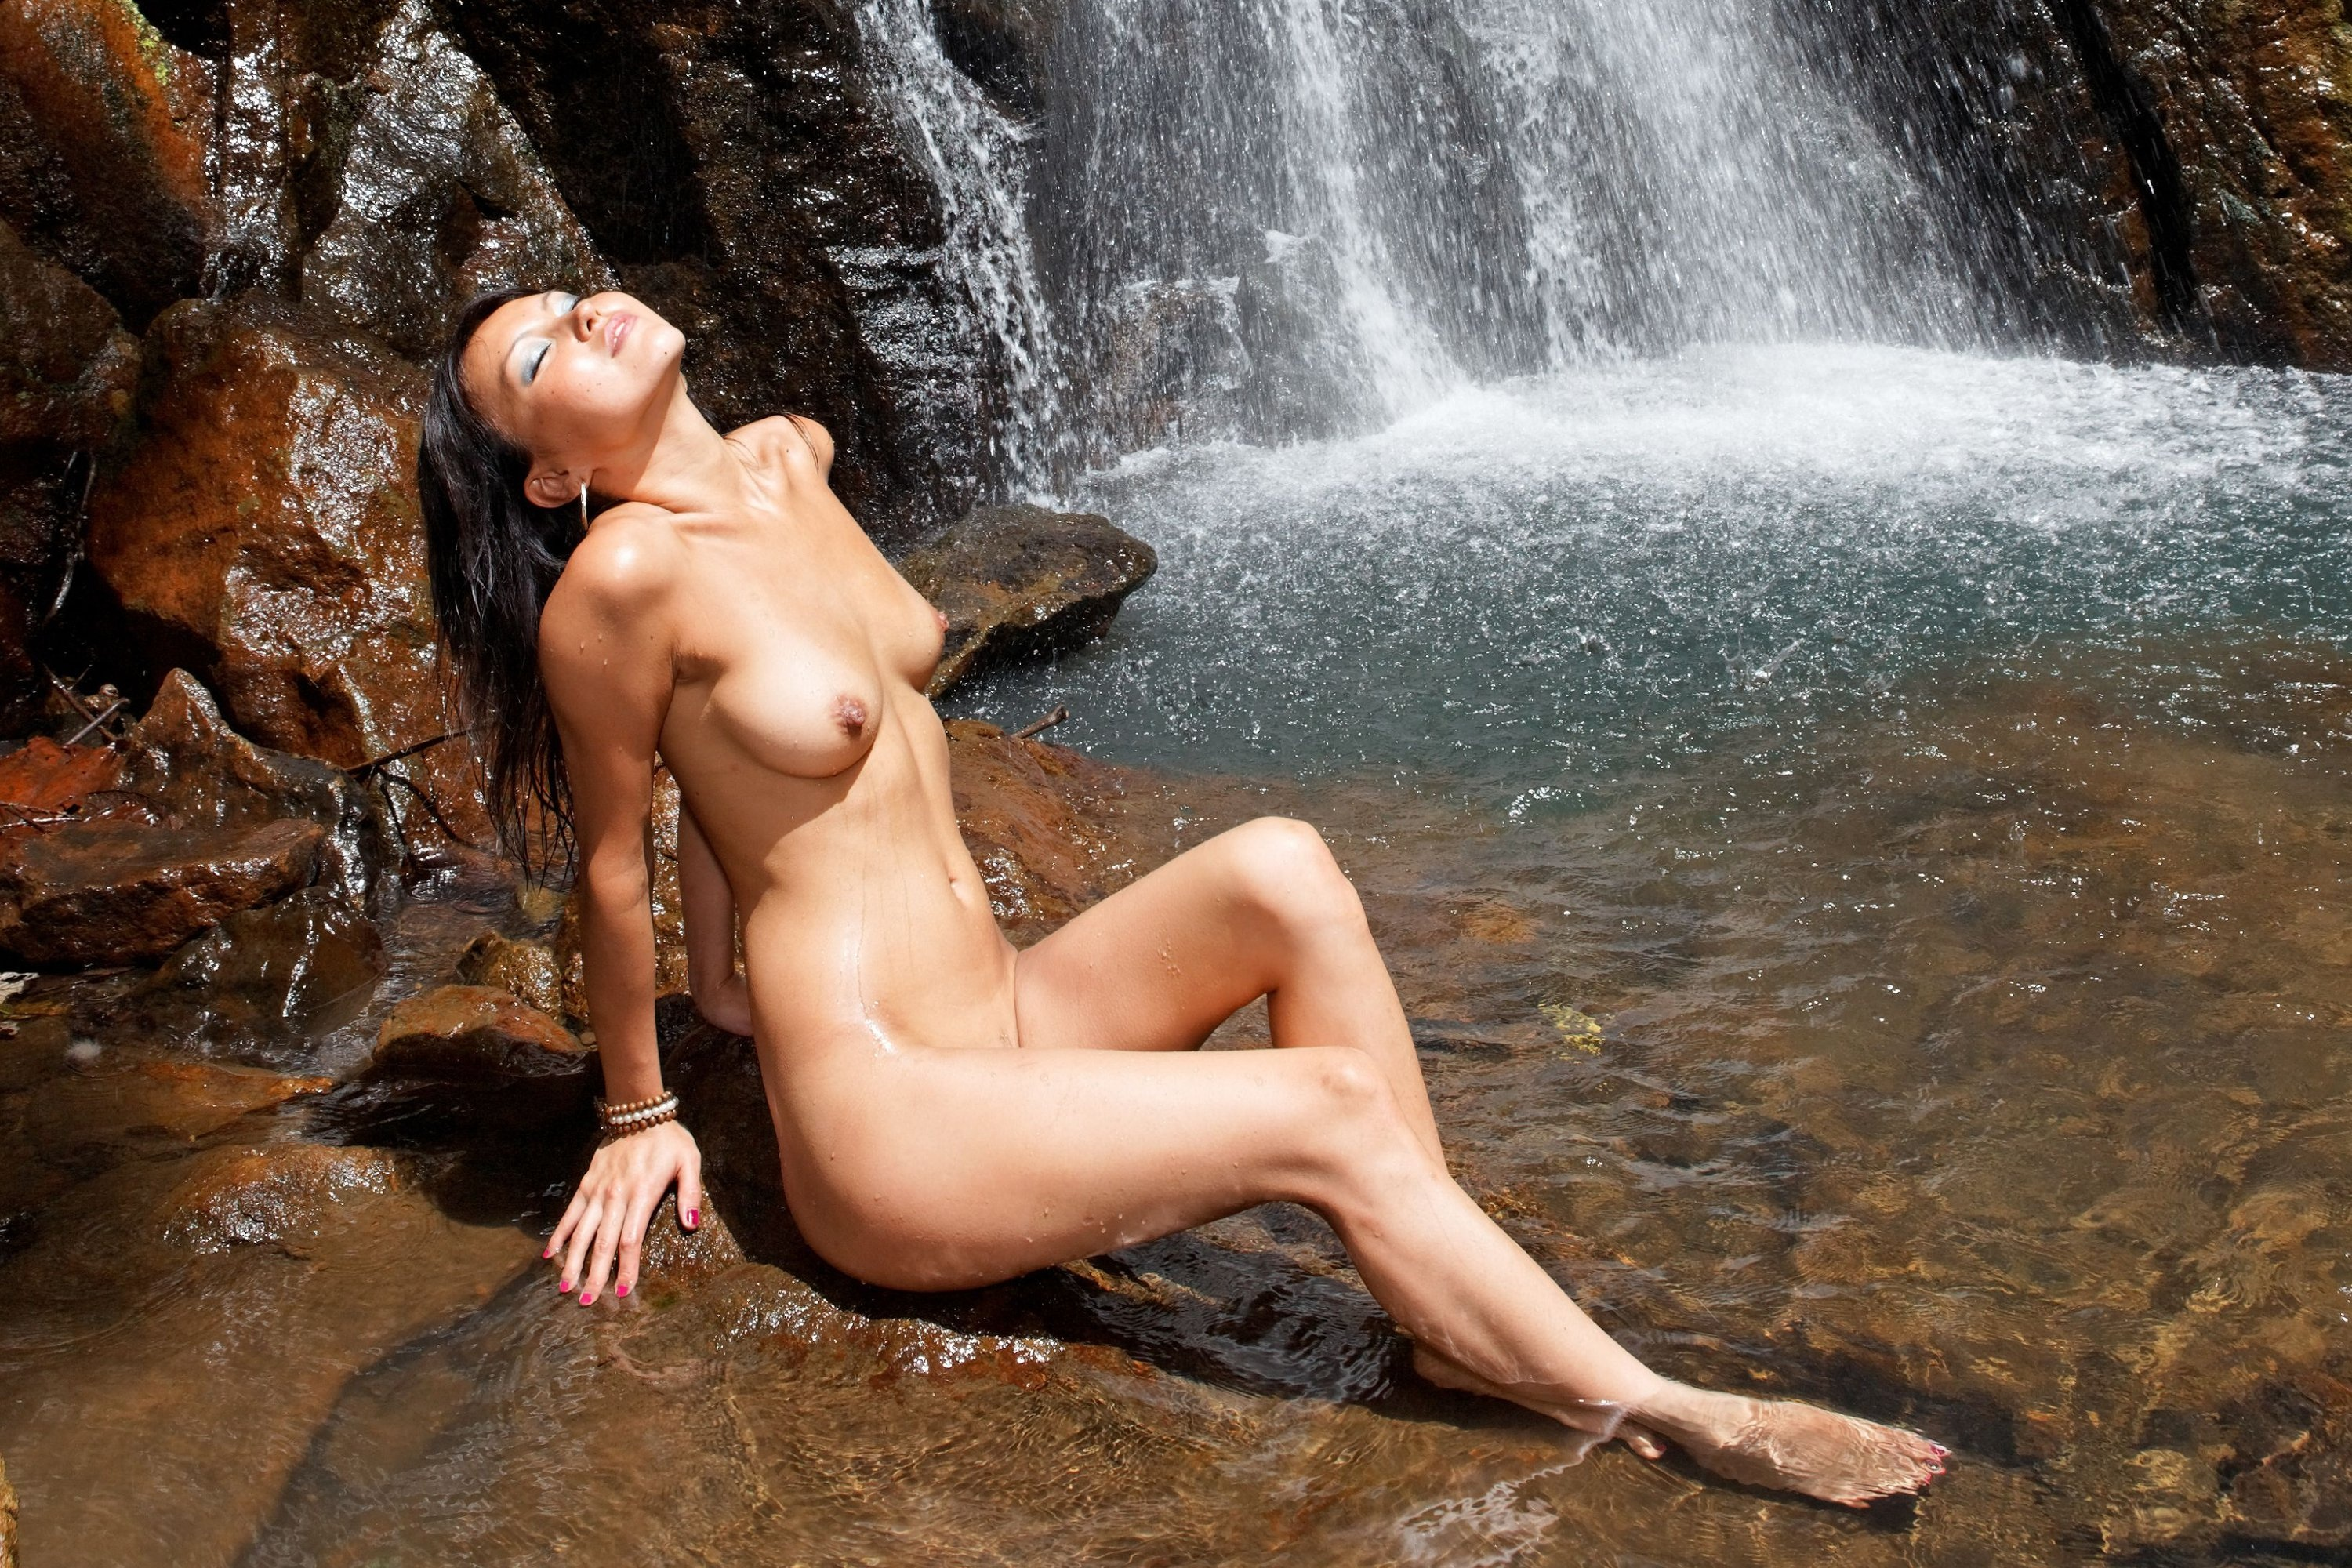 Asian Girls Nude At Waterfall